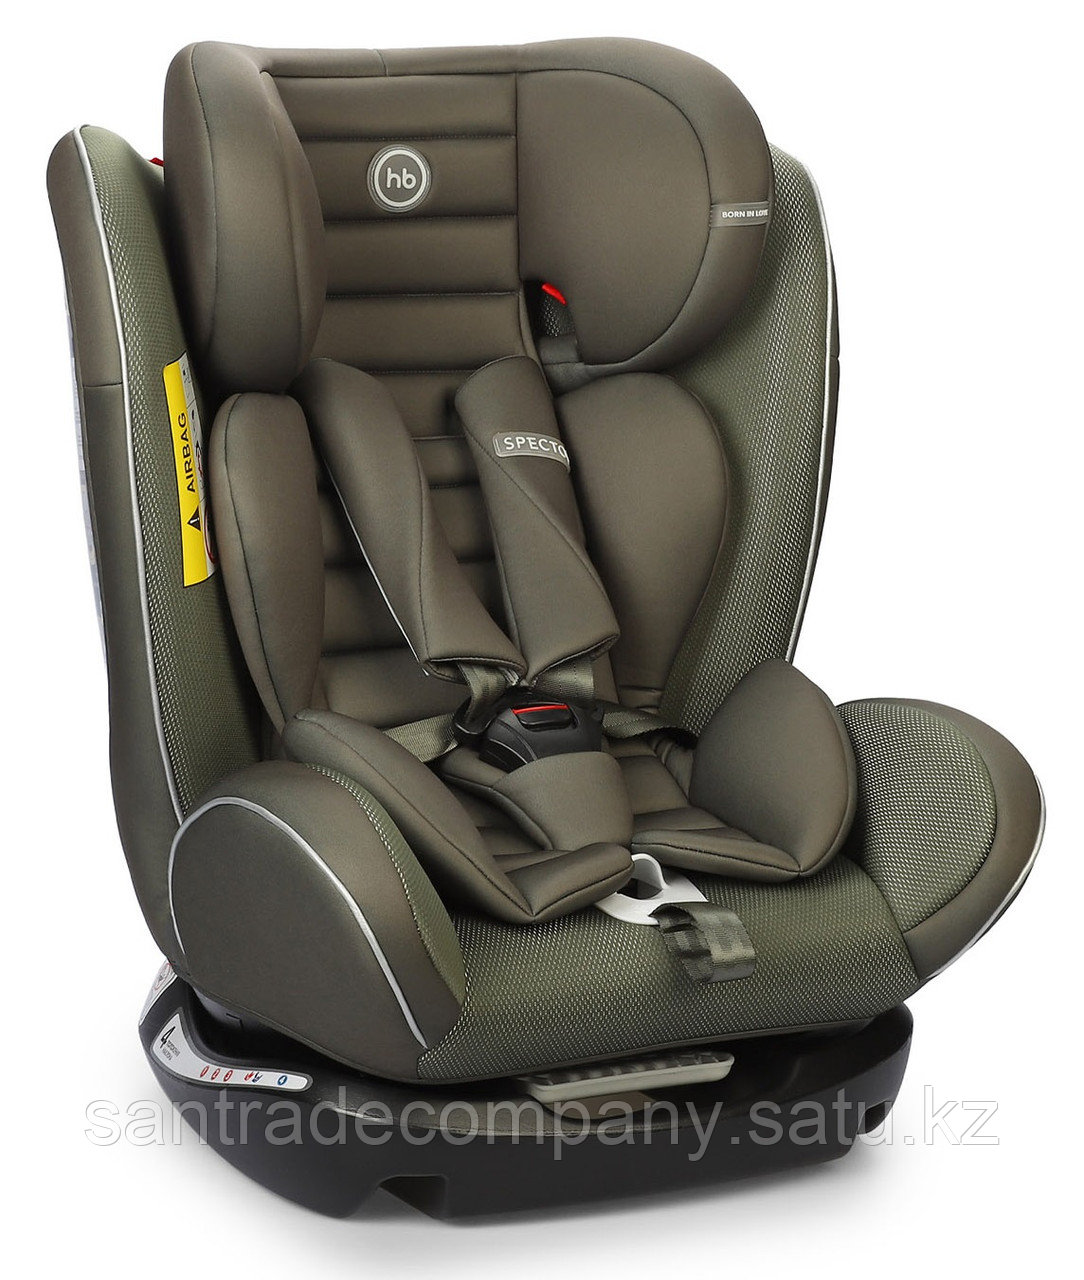 Автокресло Happy Baby Spector Dark Green(до 36 кг)